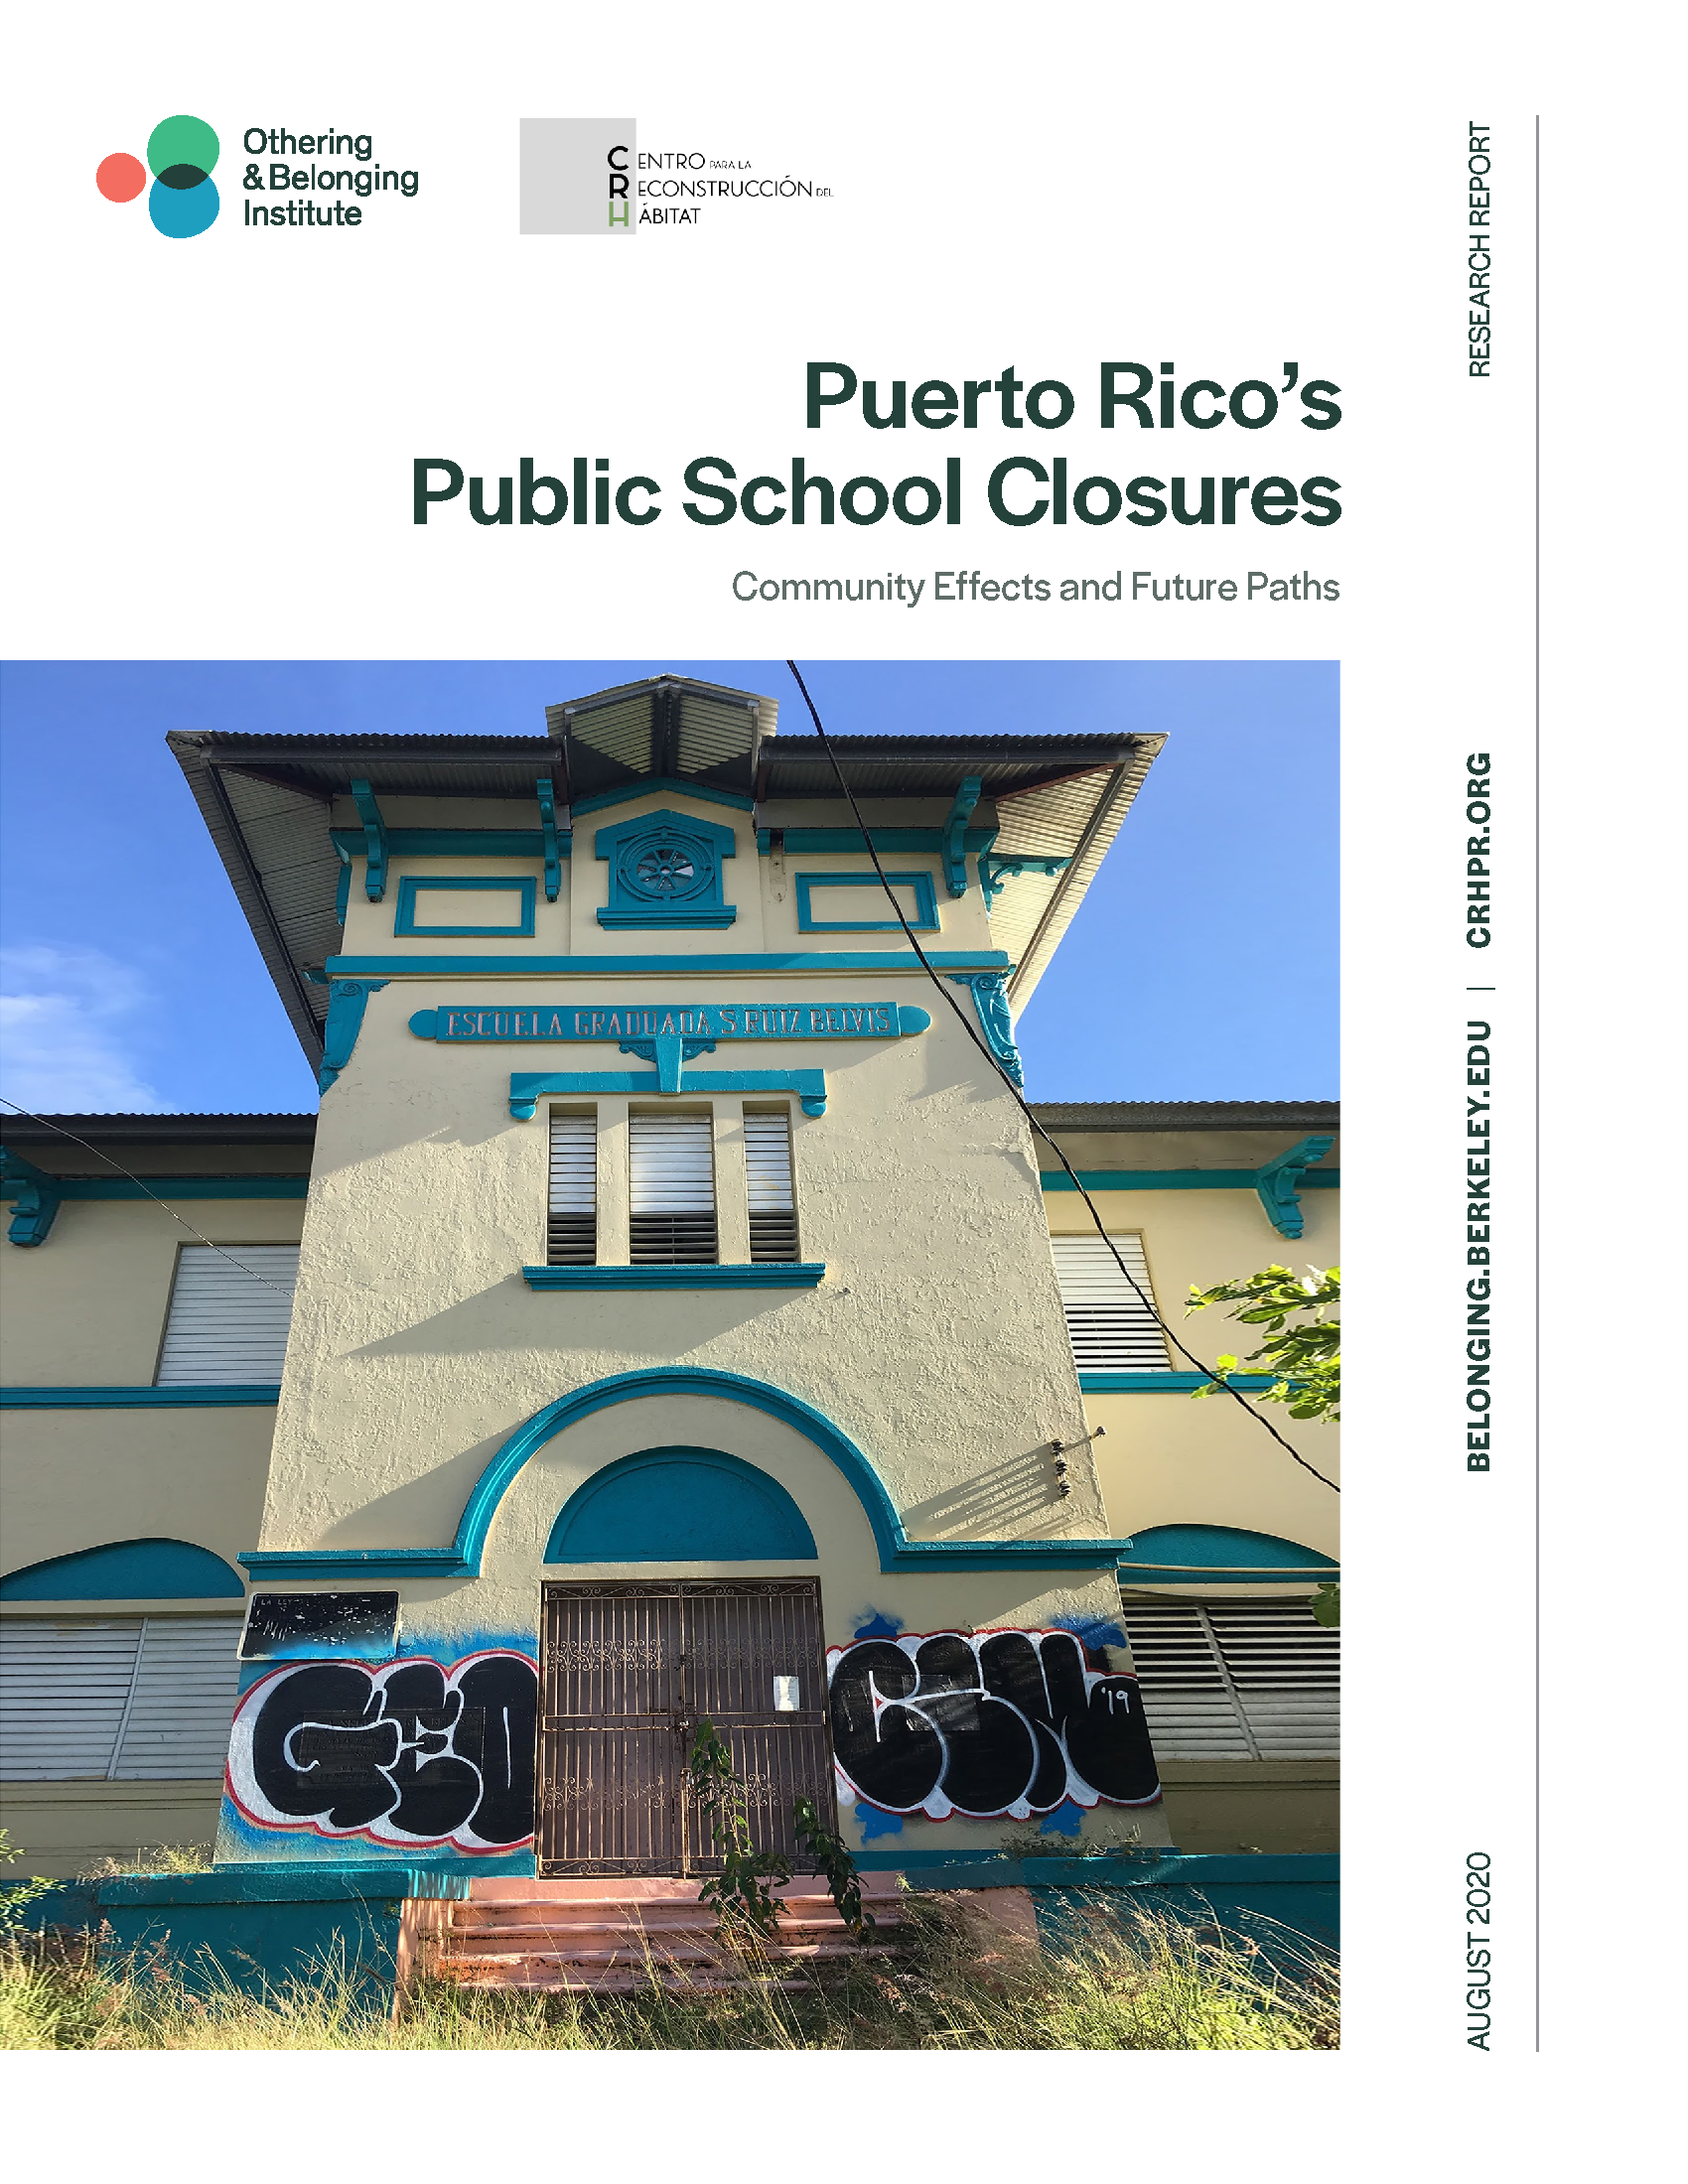 Cover of Puerto Rico report showing abandoned school